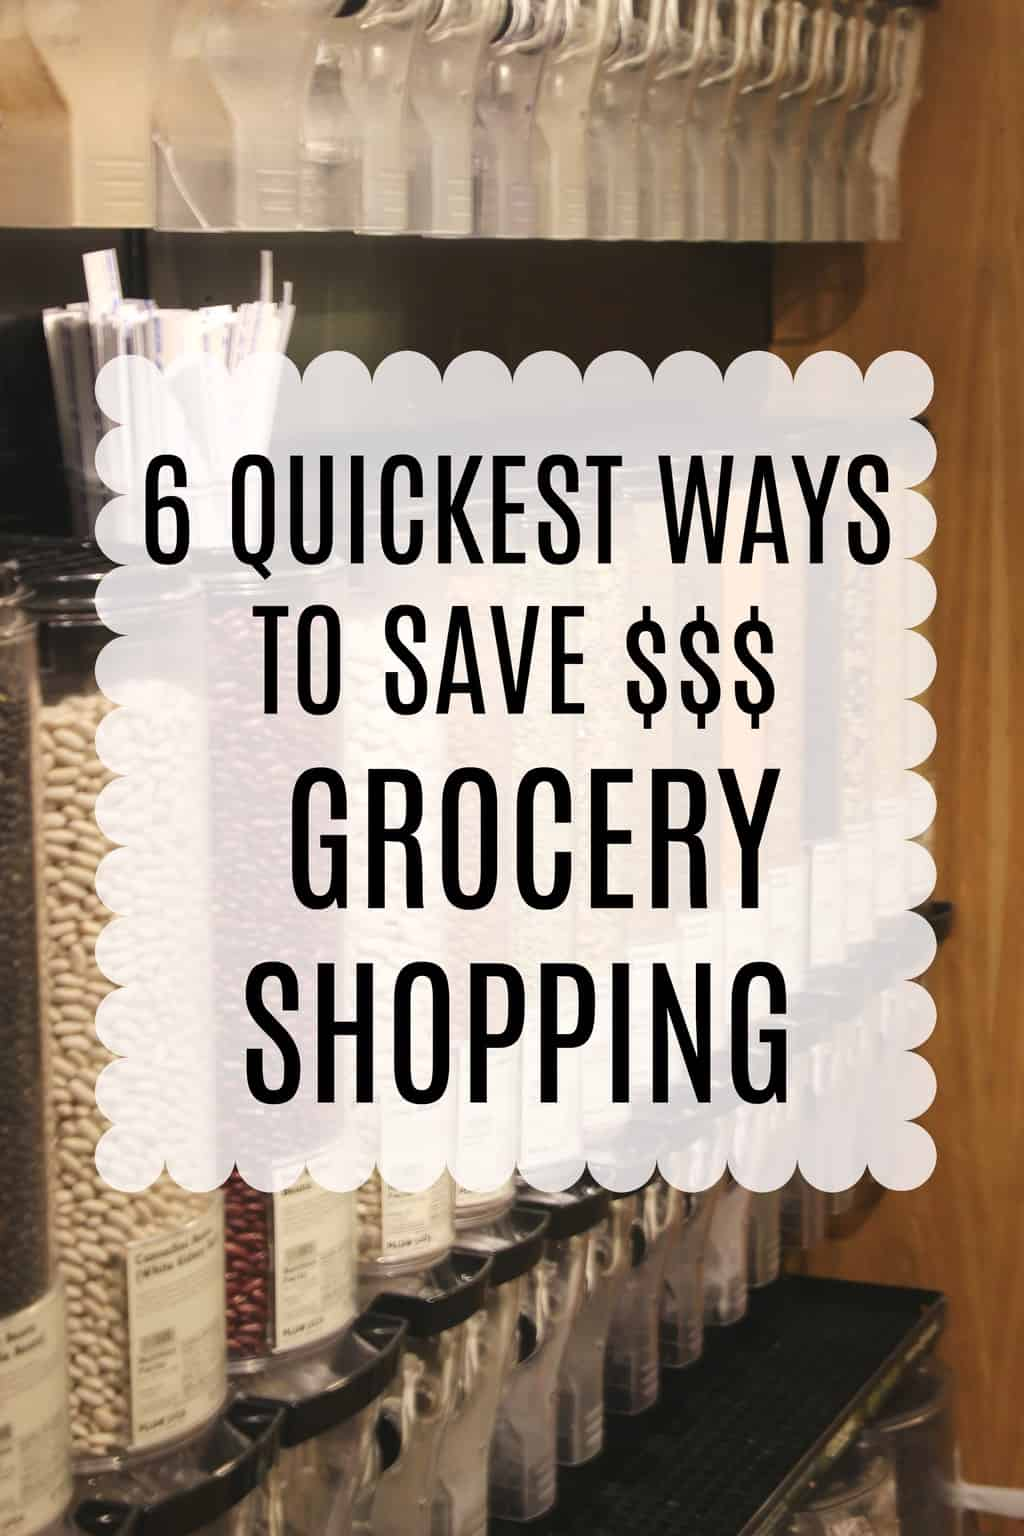 Easy ways to save money grocery shopping that don't take much time!